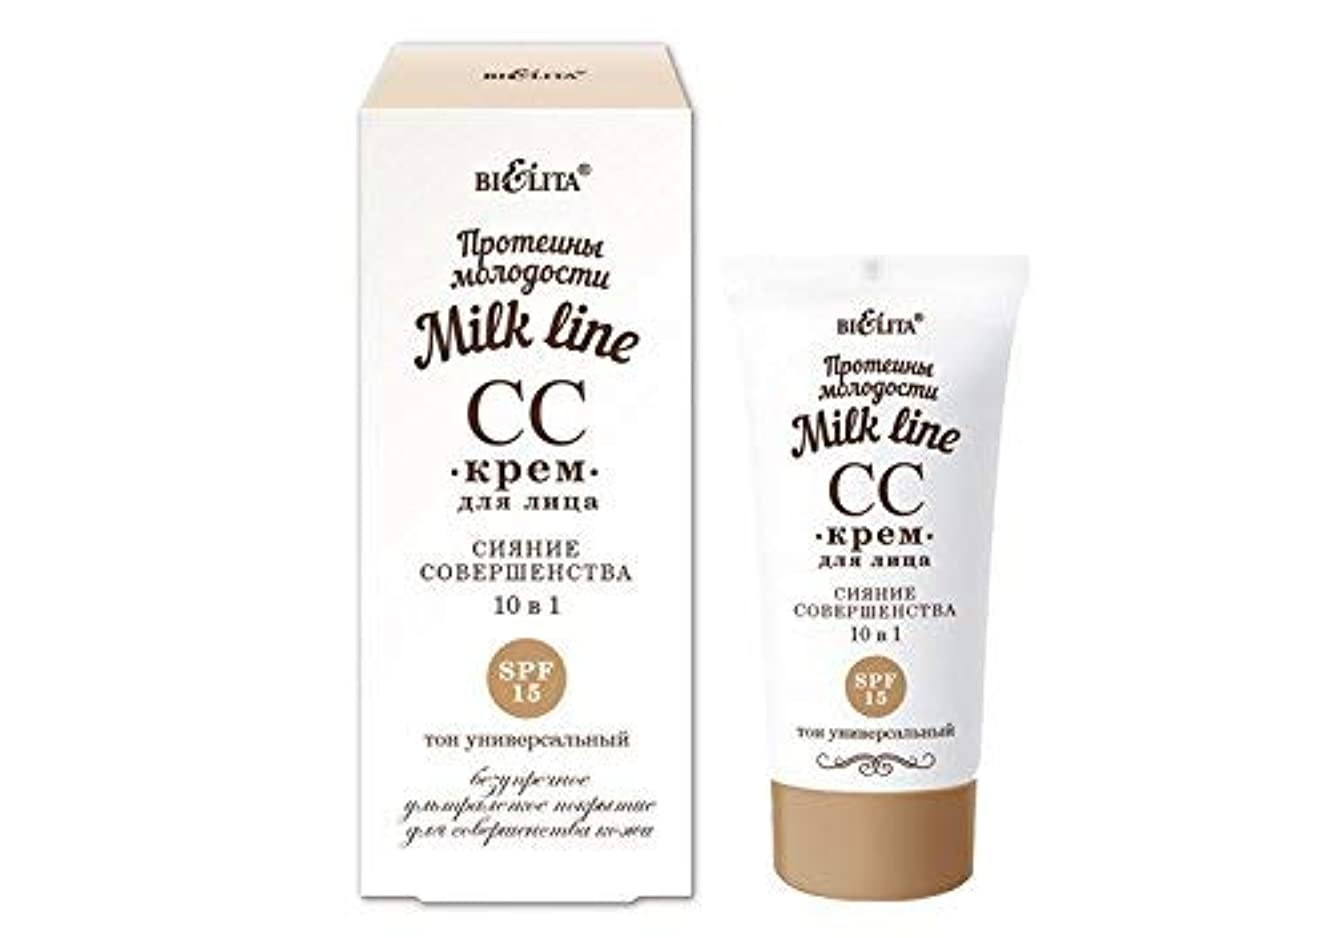 血まみれ共和党津波CC Cream,based on goat's milk Total Effects Tone Correcting Moisturizer with Sunscreen, Light to Medium 10 effects...